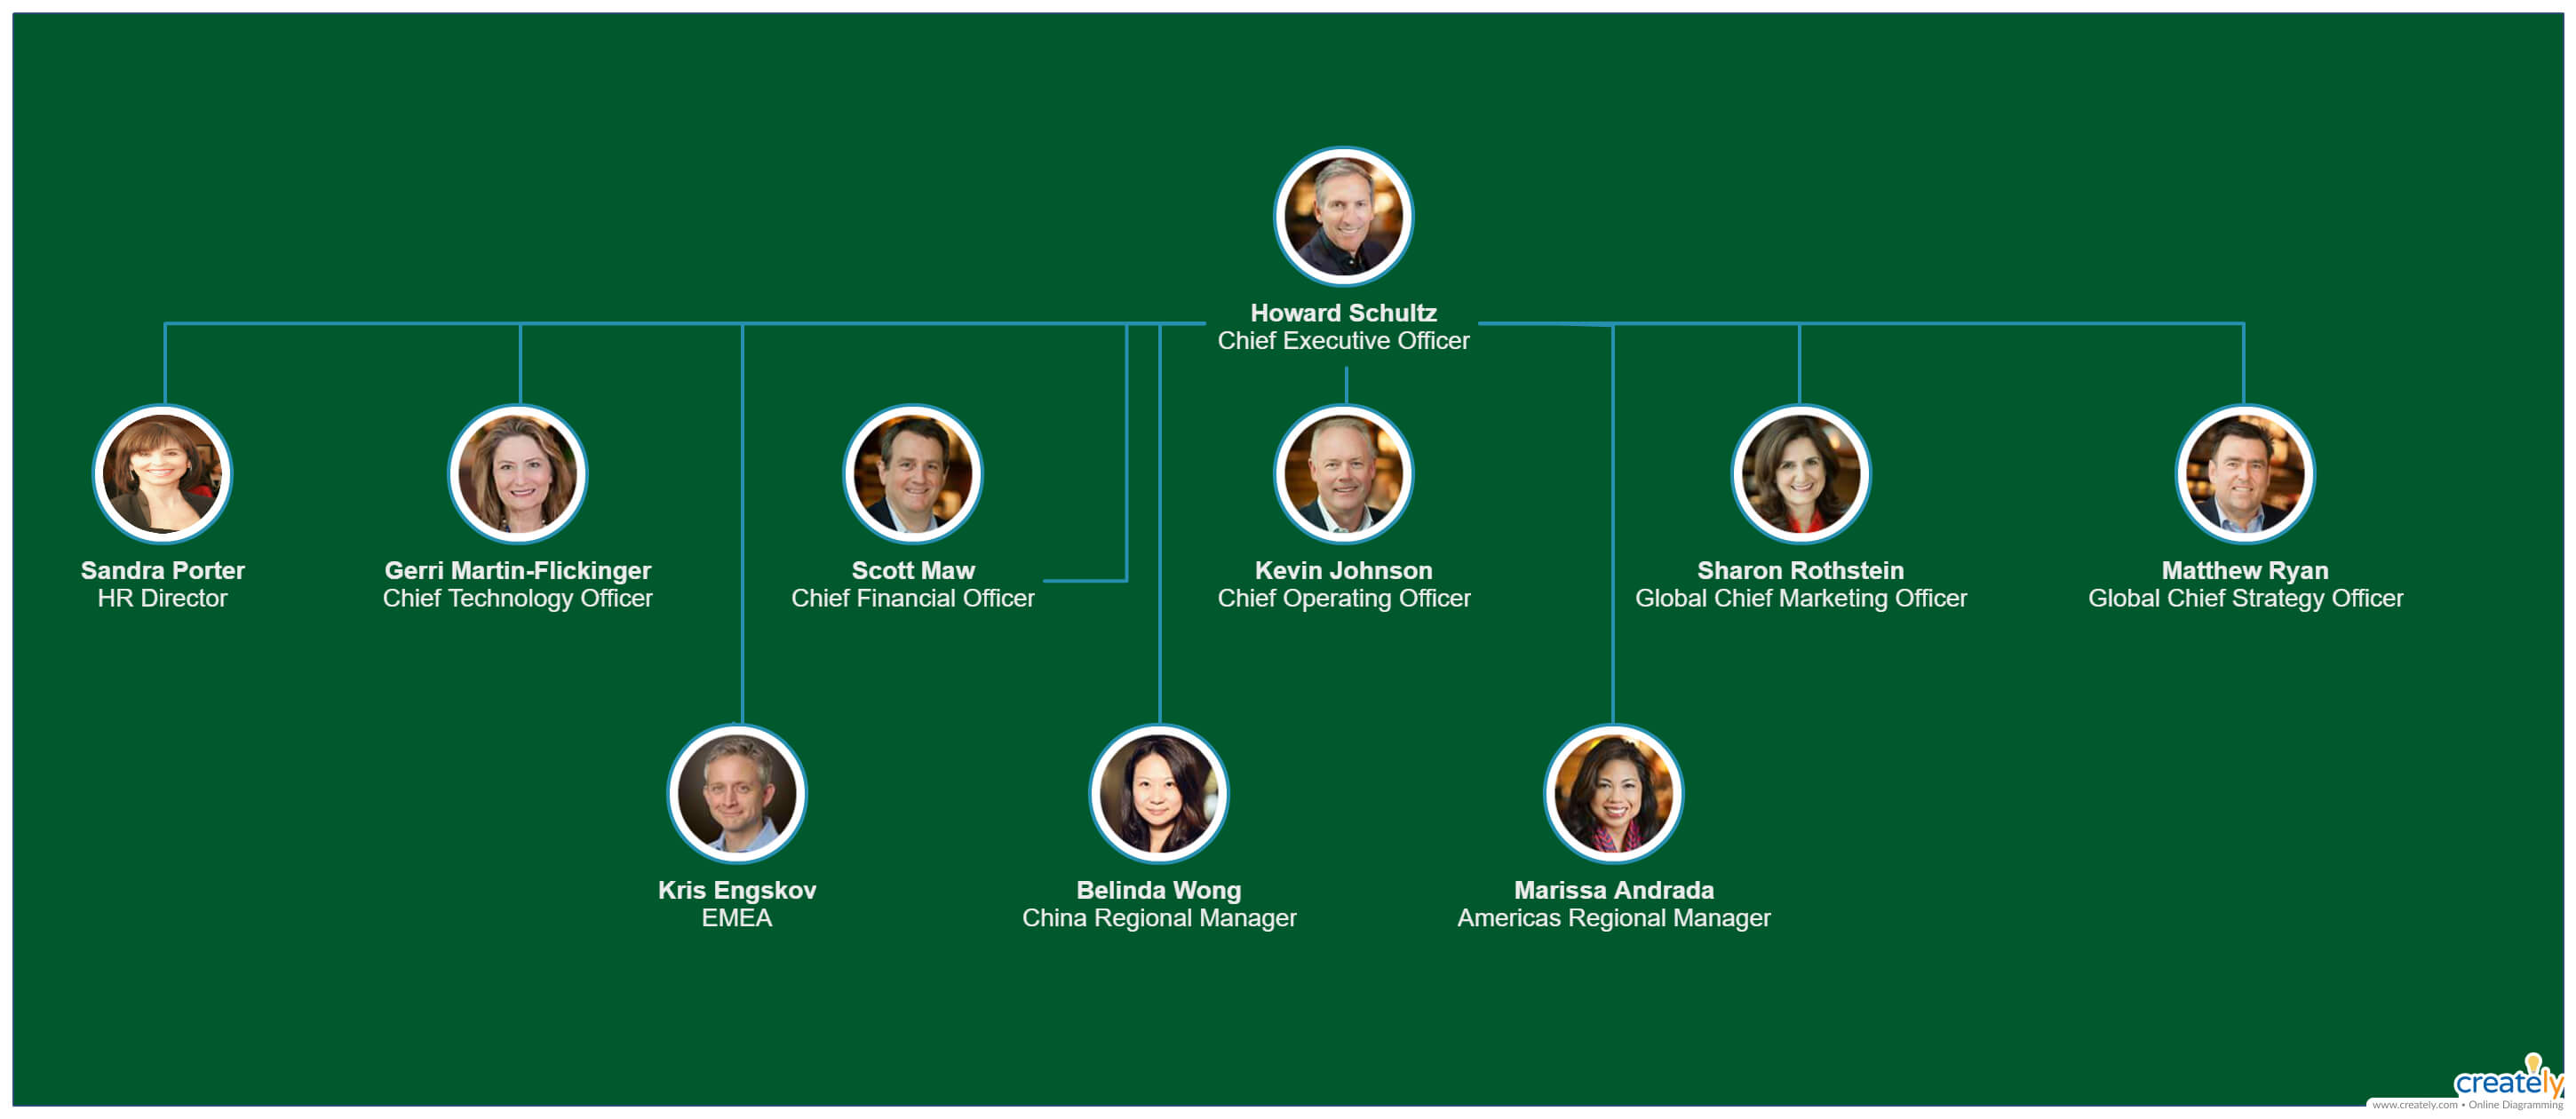 Starbucks Organizational Chart – You Can Edit This Template For Starbucks Powerpoint Template